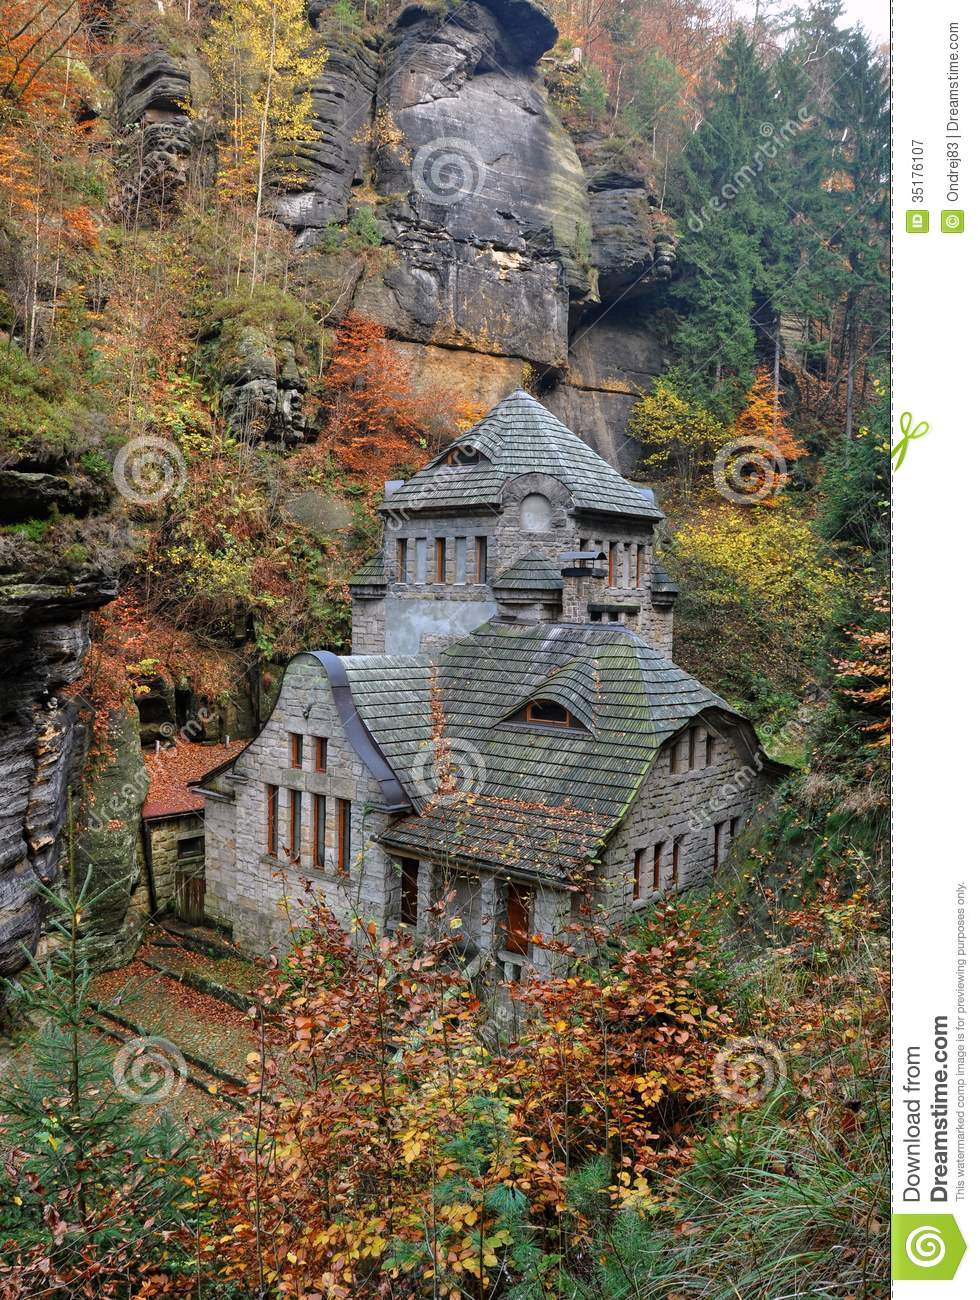 Fairytale House Royalty Free Stock Photography Image